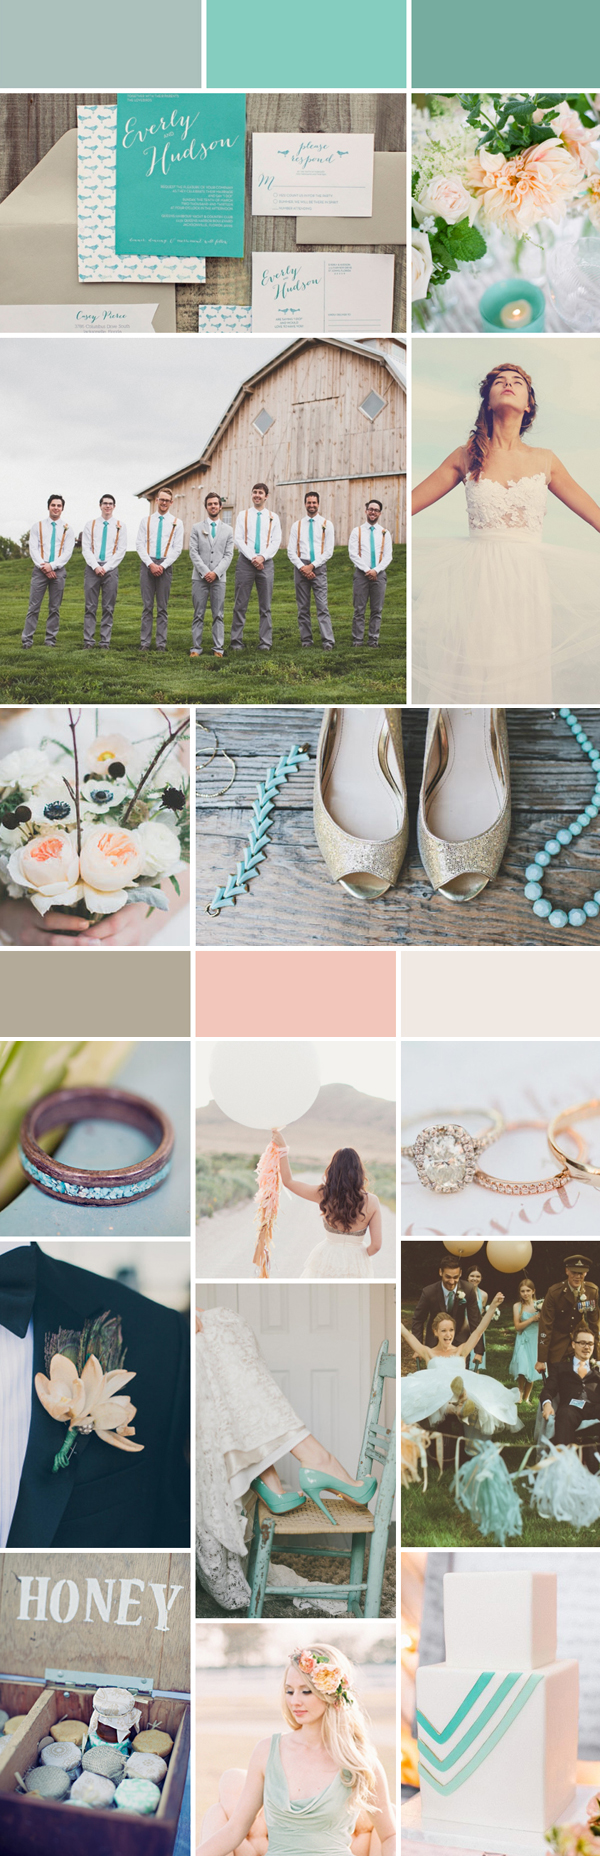 SomethingTurquoise_CarlyRaeWeddings_Turquoise_Peach_inspiration_board